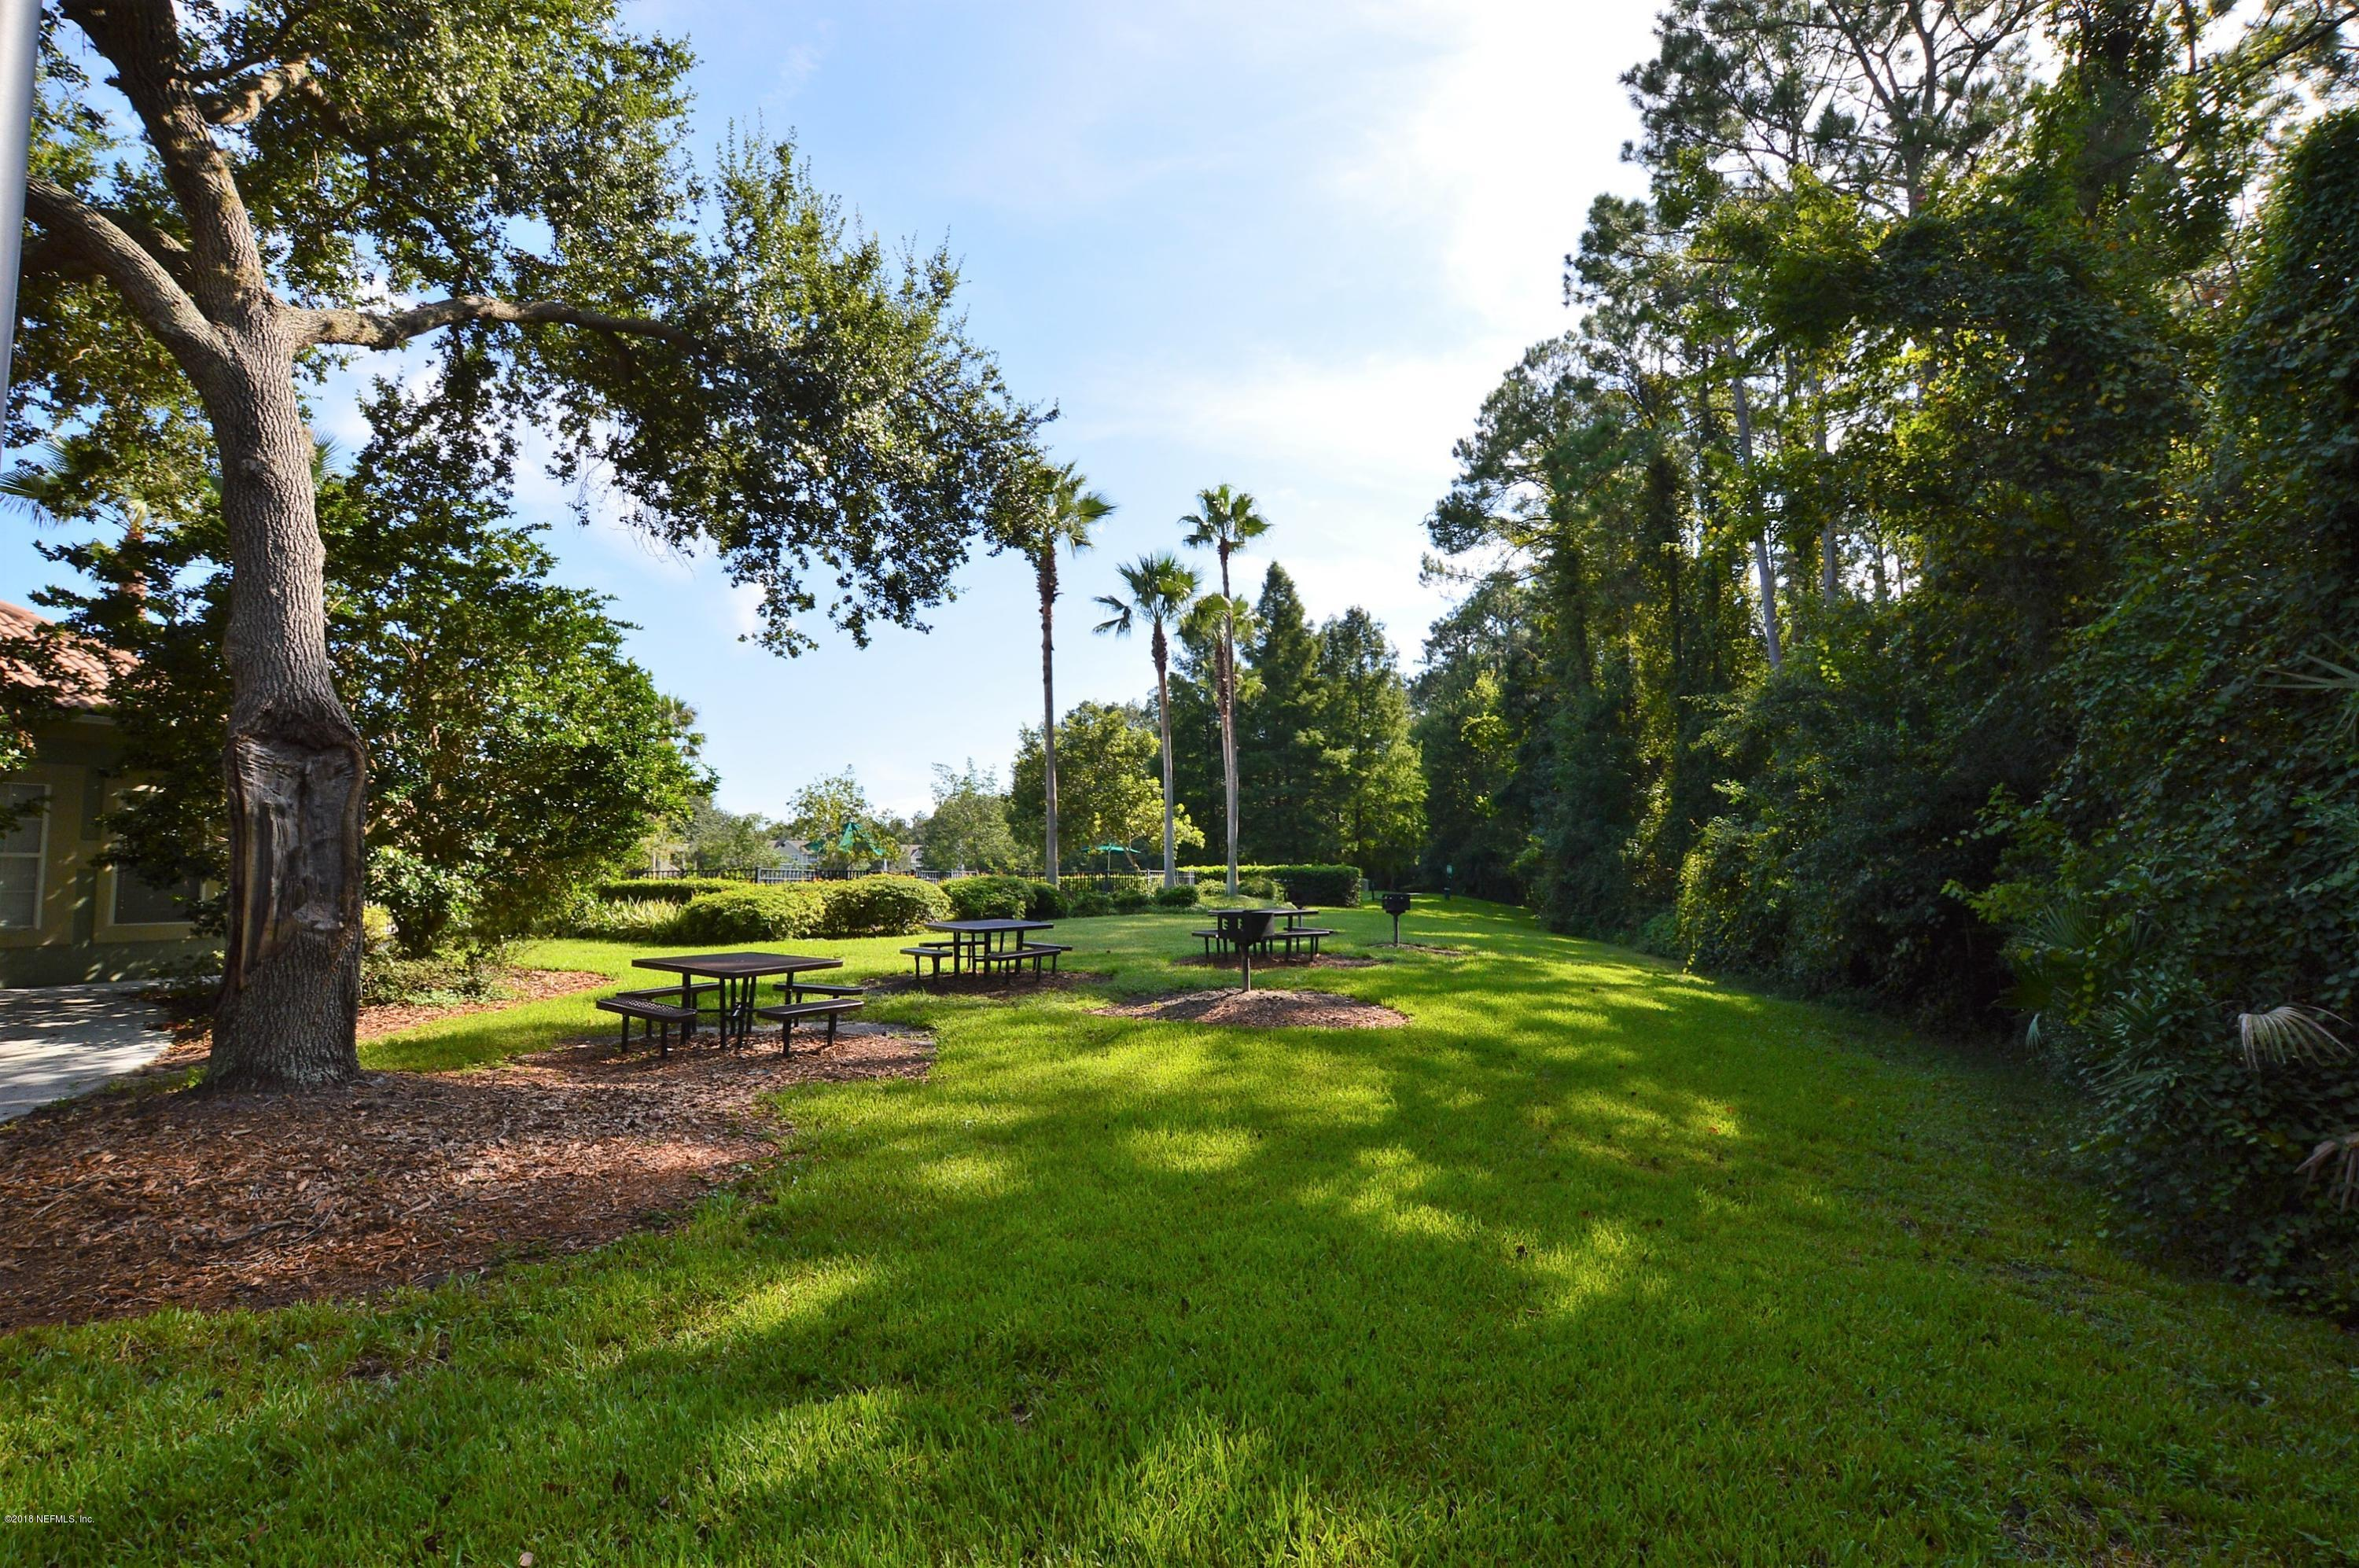 7701 TIMBERLIN PARK, JACKSONVILLE, FLORIDA 32256, 3 Bedrooms Bedrooms, ,2 BathroomsBathrooms,Residential - condos/townhomes,For sale,TIMBERLIN PARK,952336